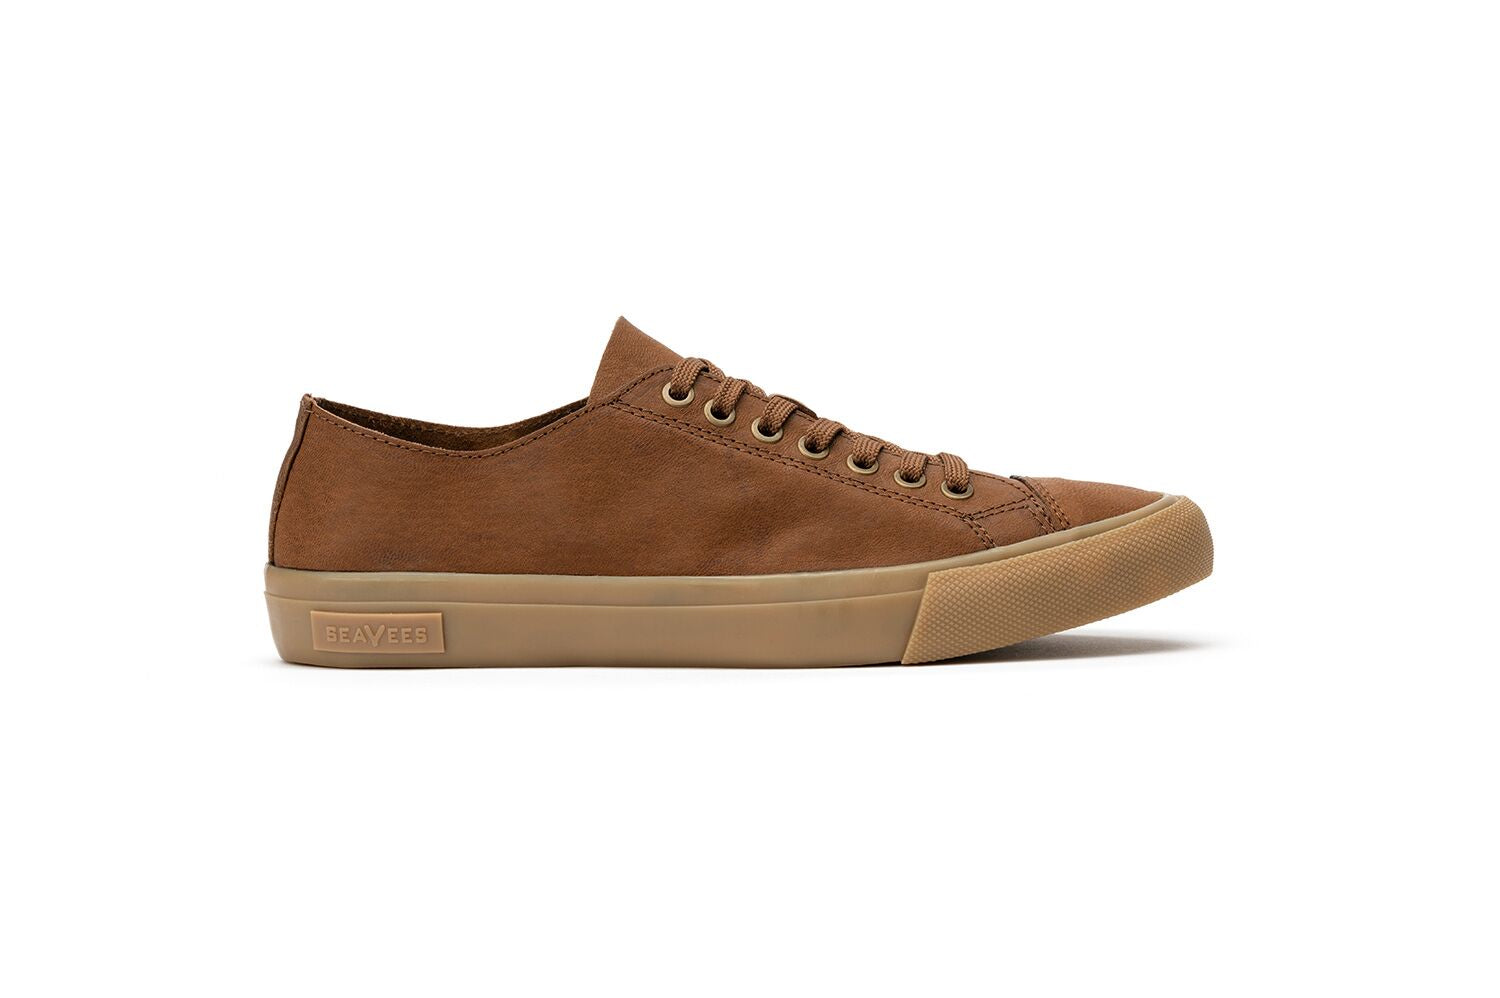 SeaVees Army Issue Low Burnished Leather Sneakers